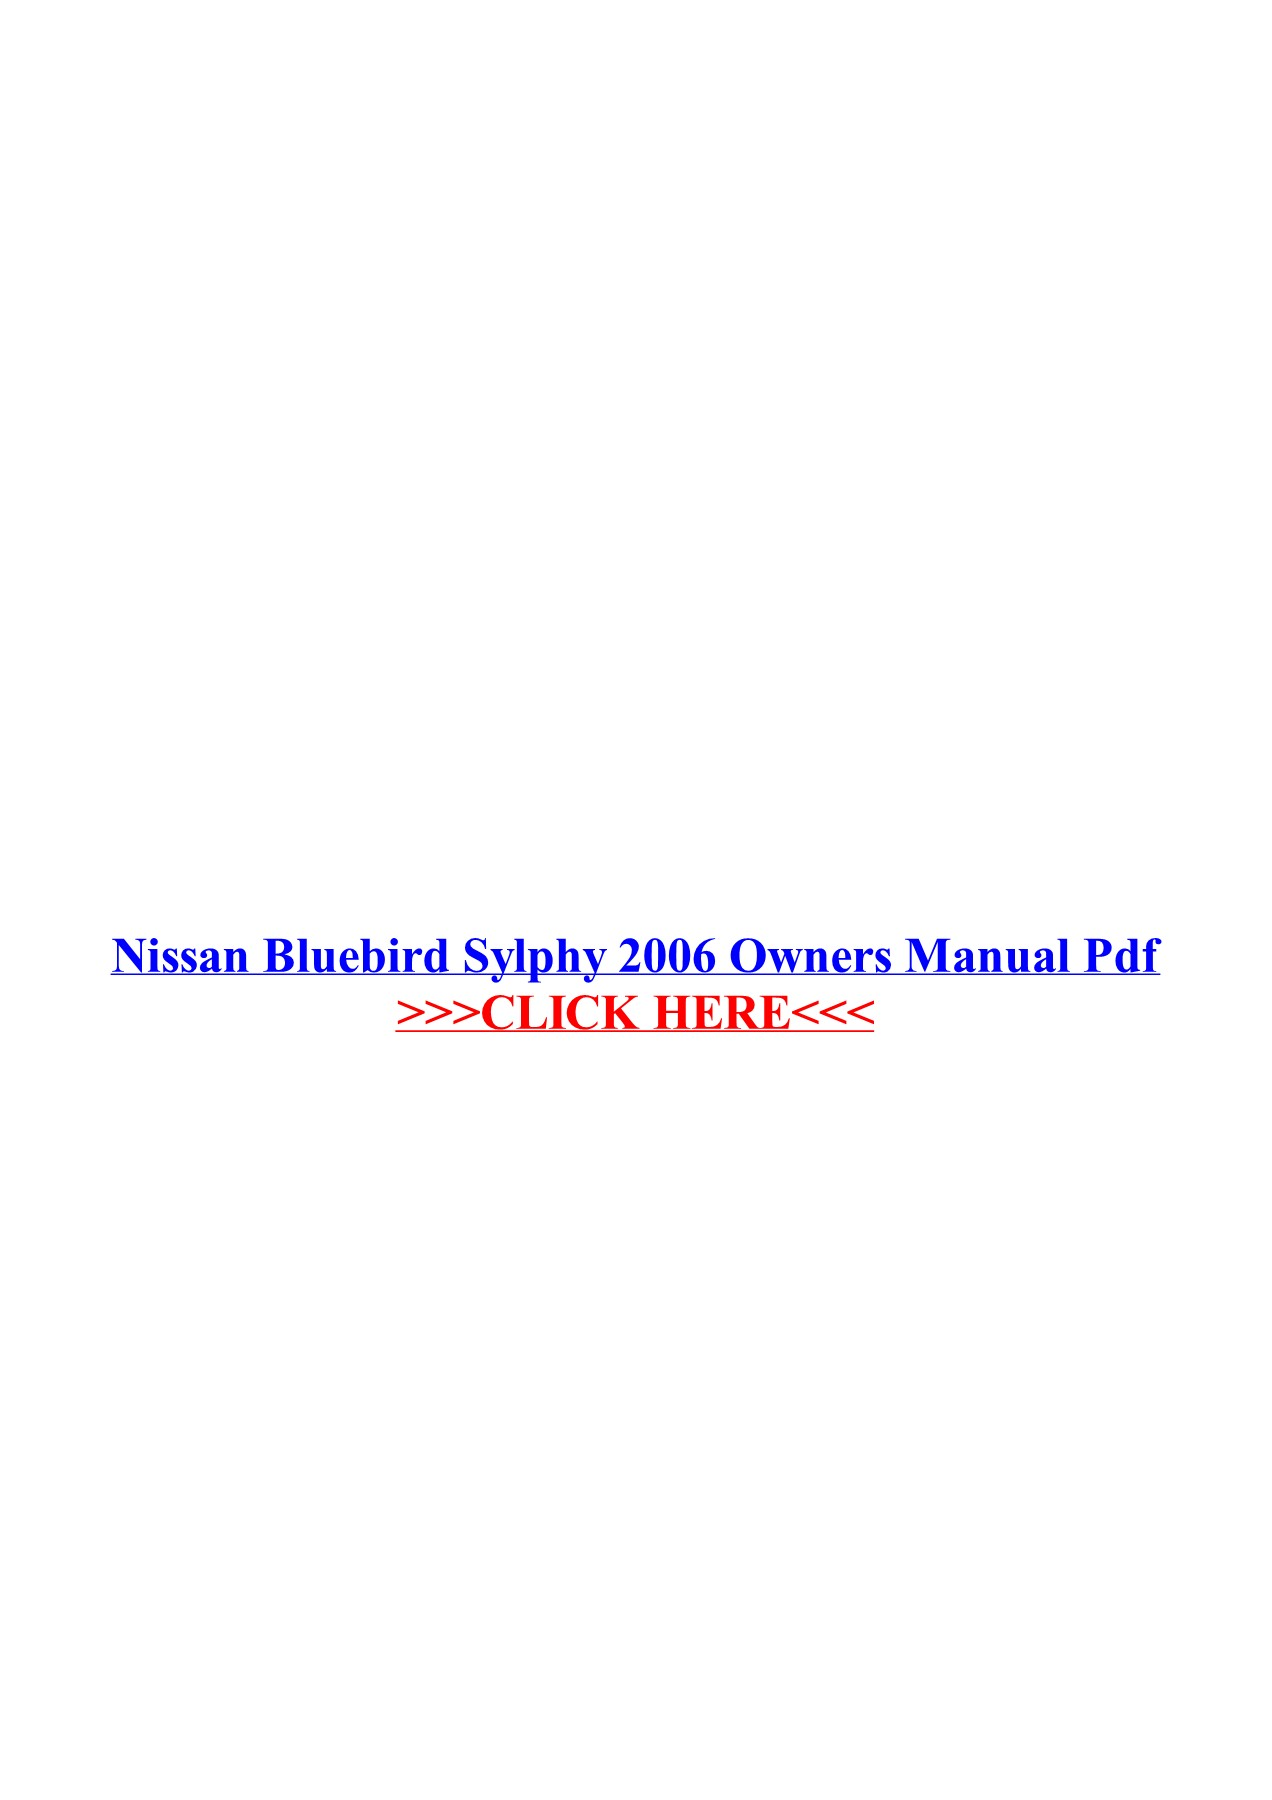 2003 nissan altima owners manual pdf